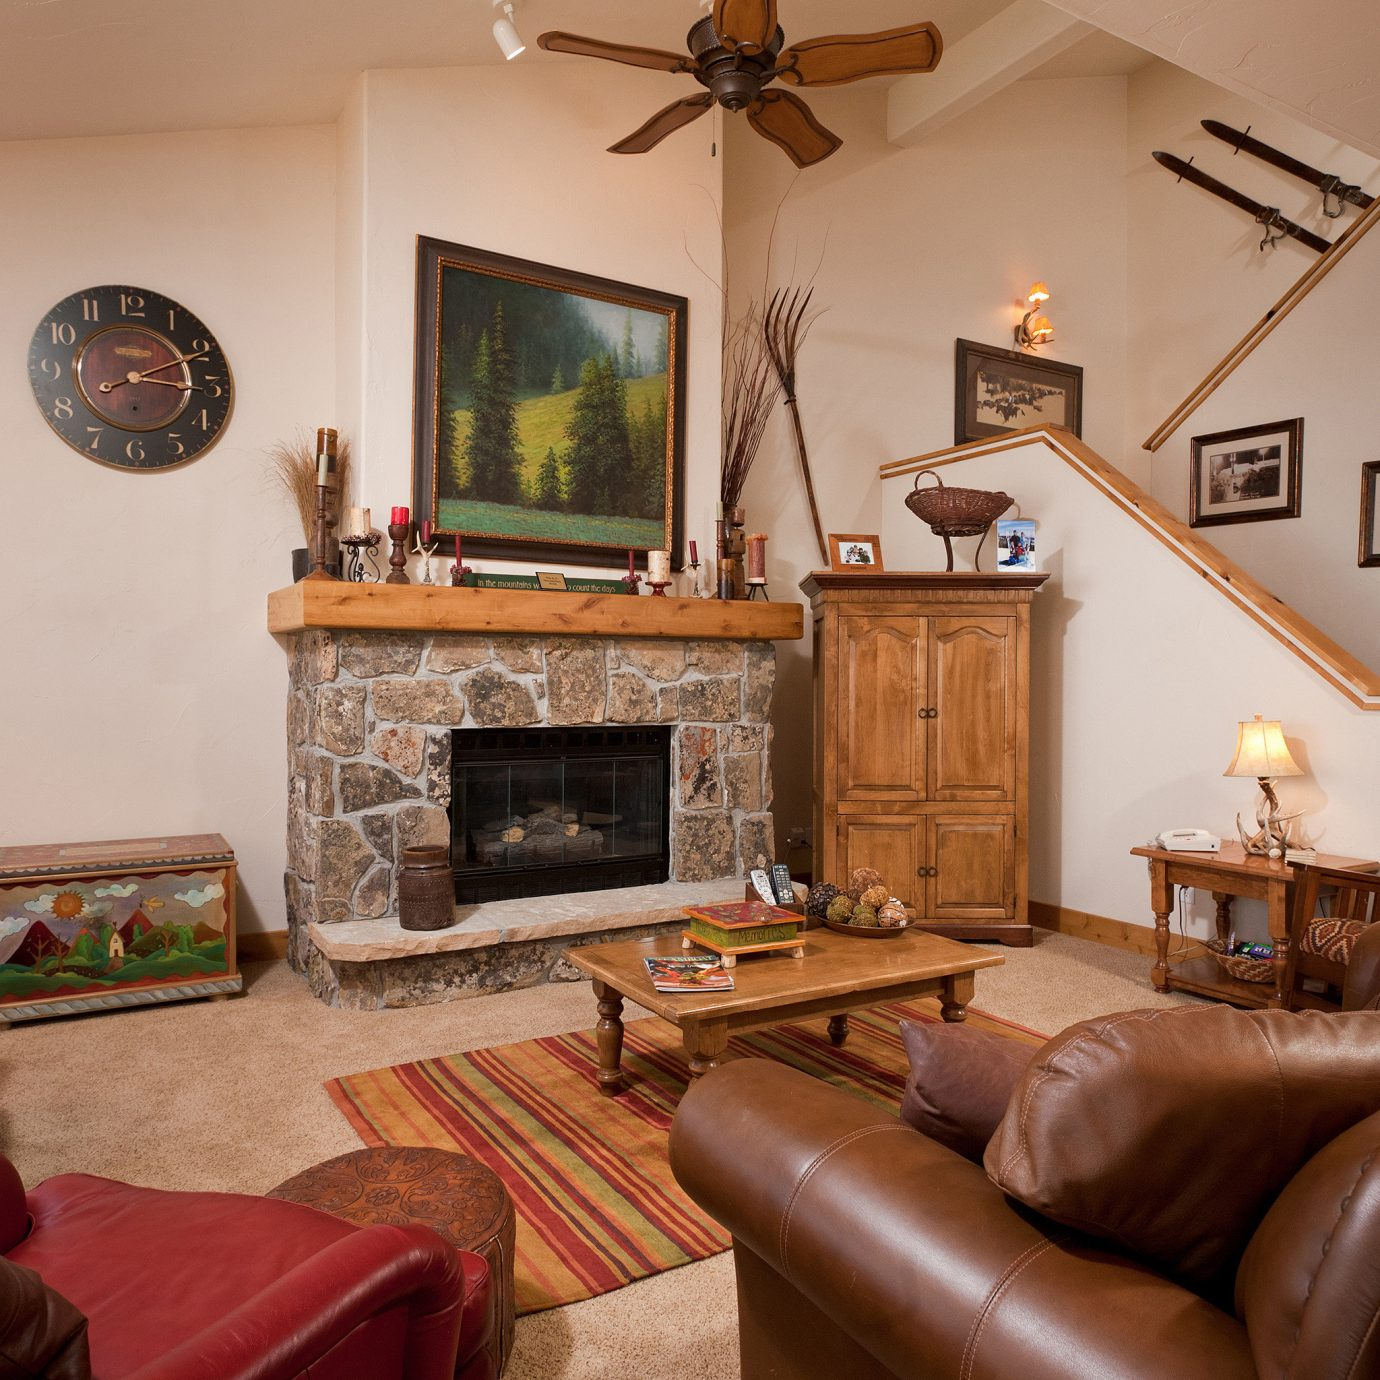 Fireplace Lounge sofa living room property leather chair home cottage Bedroom hardwood farmhouse Villa Suite flat